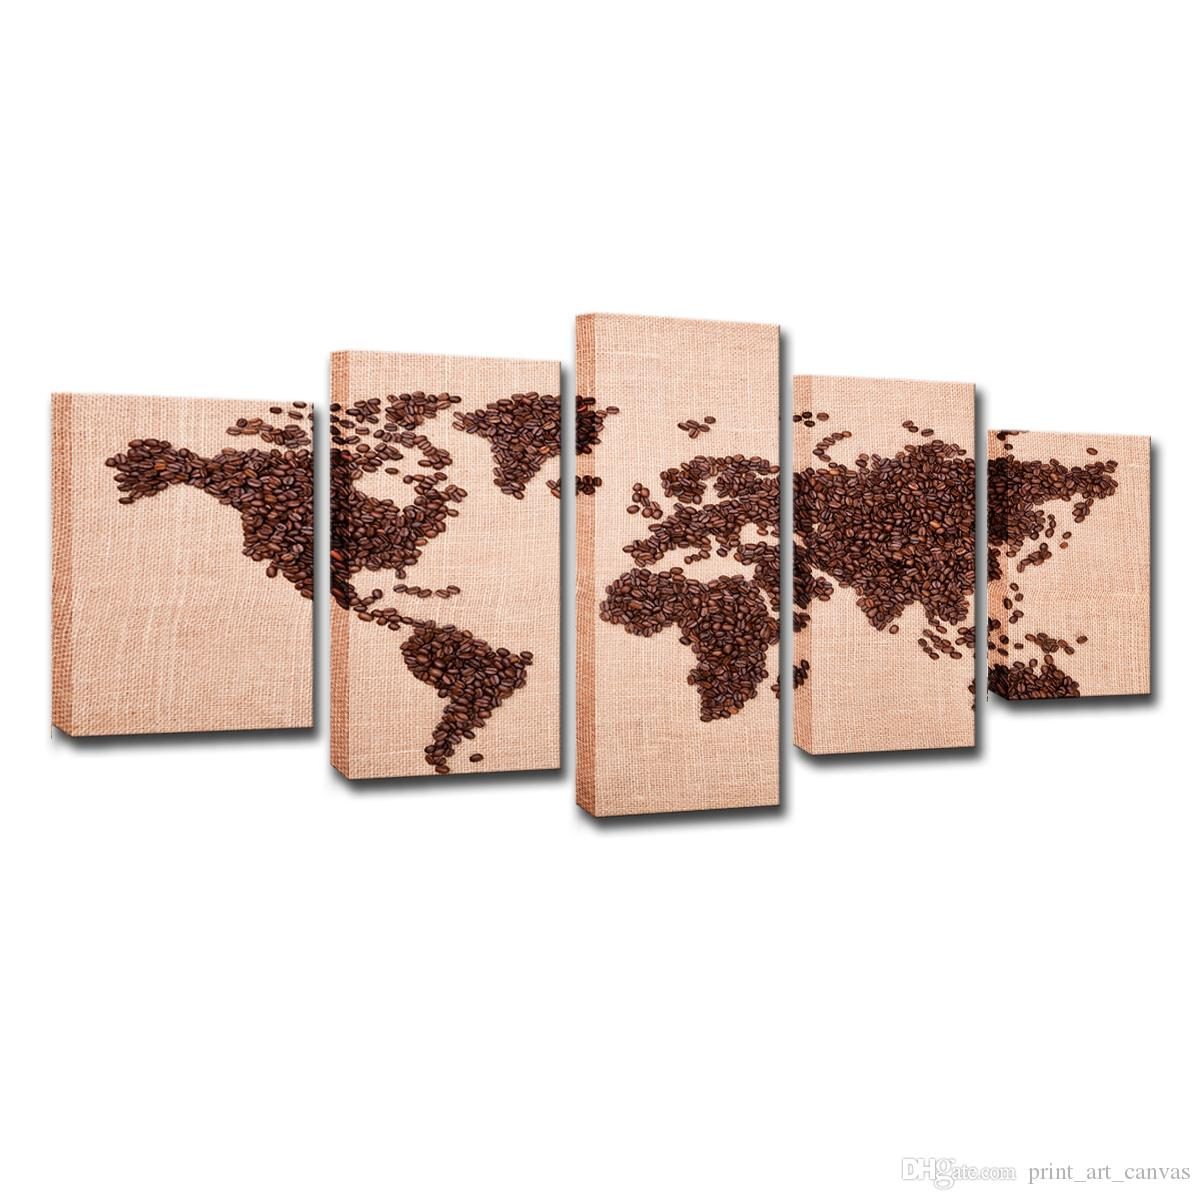 Canvas Pictures Home Decor For Living Room Wall Art 5 Pieces Coffee Beans World Map Paintings Modern HD Prints Posters